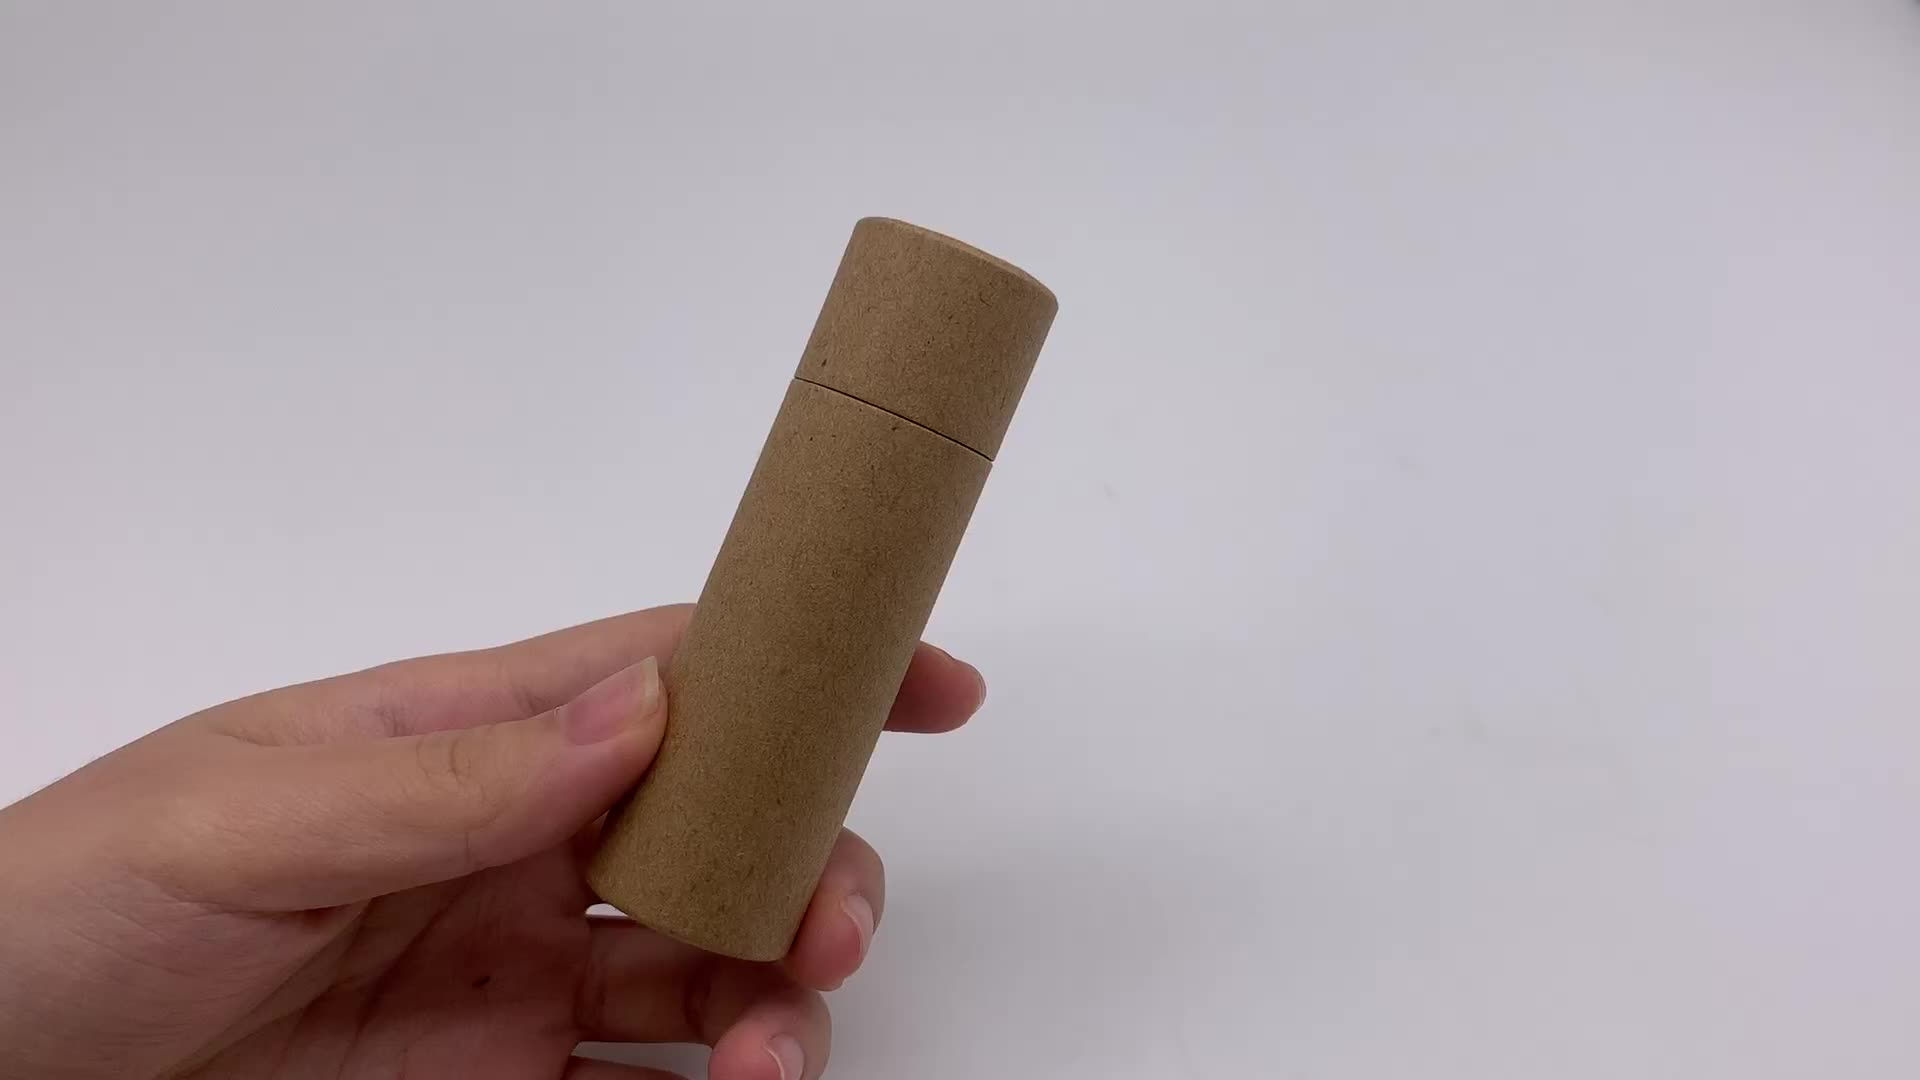 Round Recycled Cardboard Container Eco Push Up Kraft Paper Tubes For Lip Balm Packaging